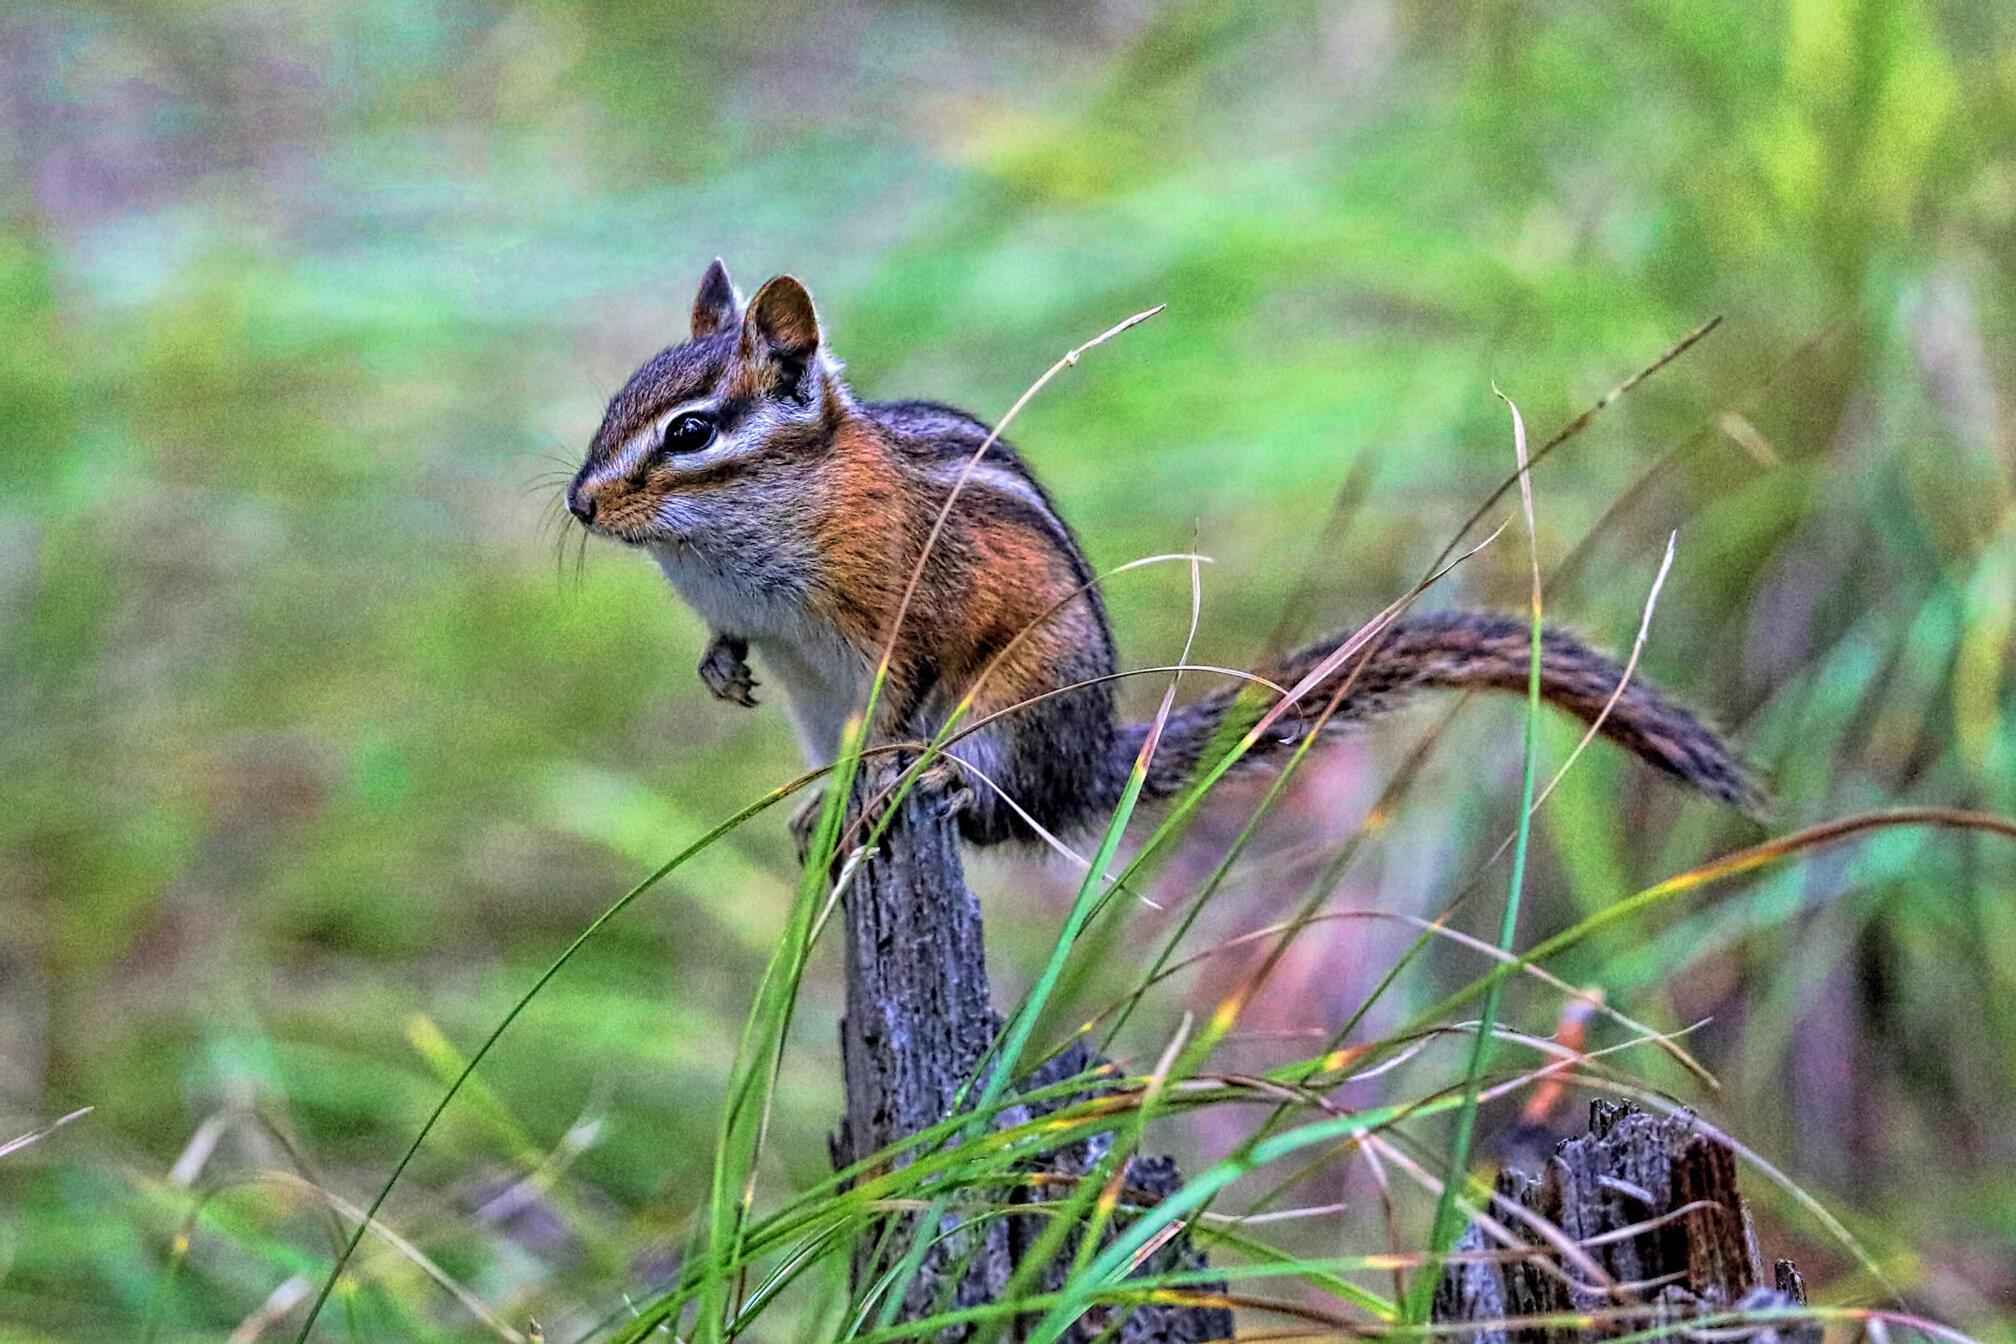 Red-tailed chipmunk in camp.